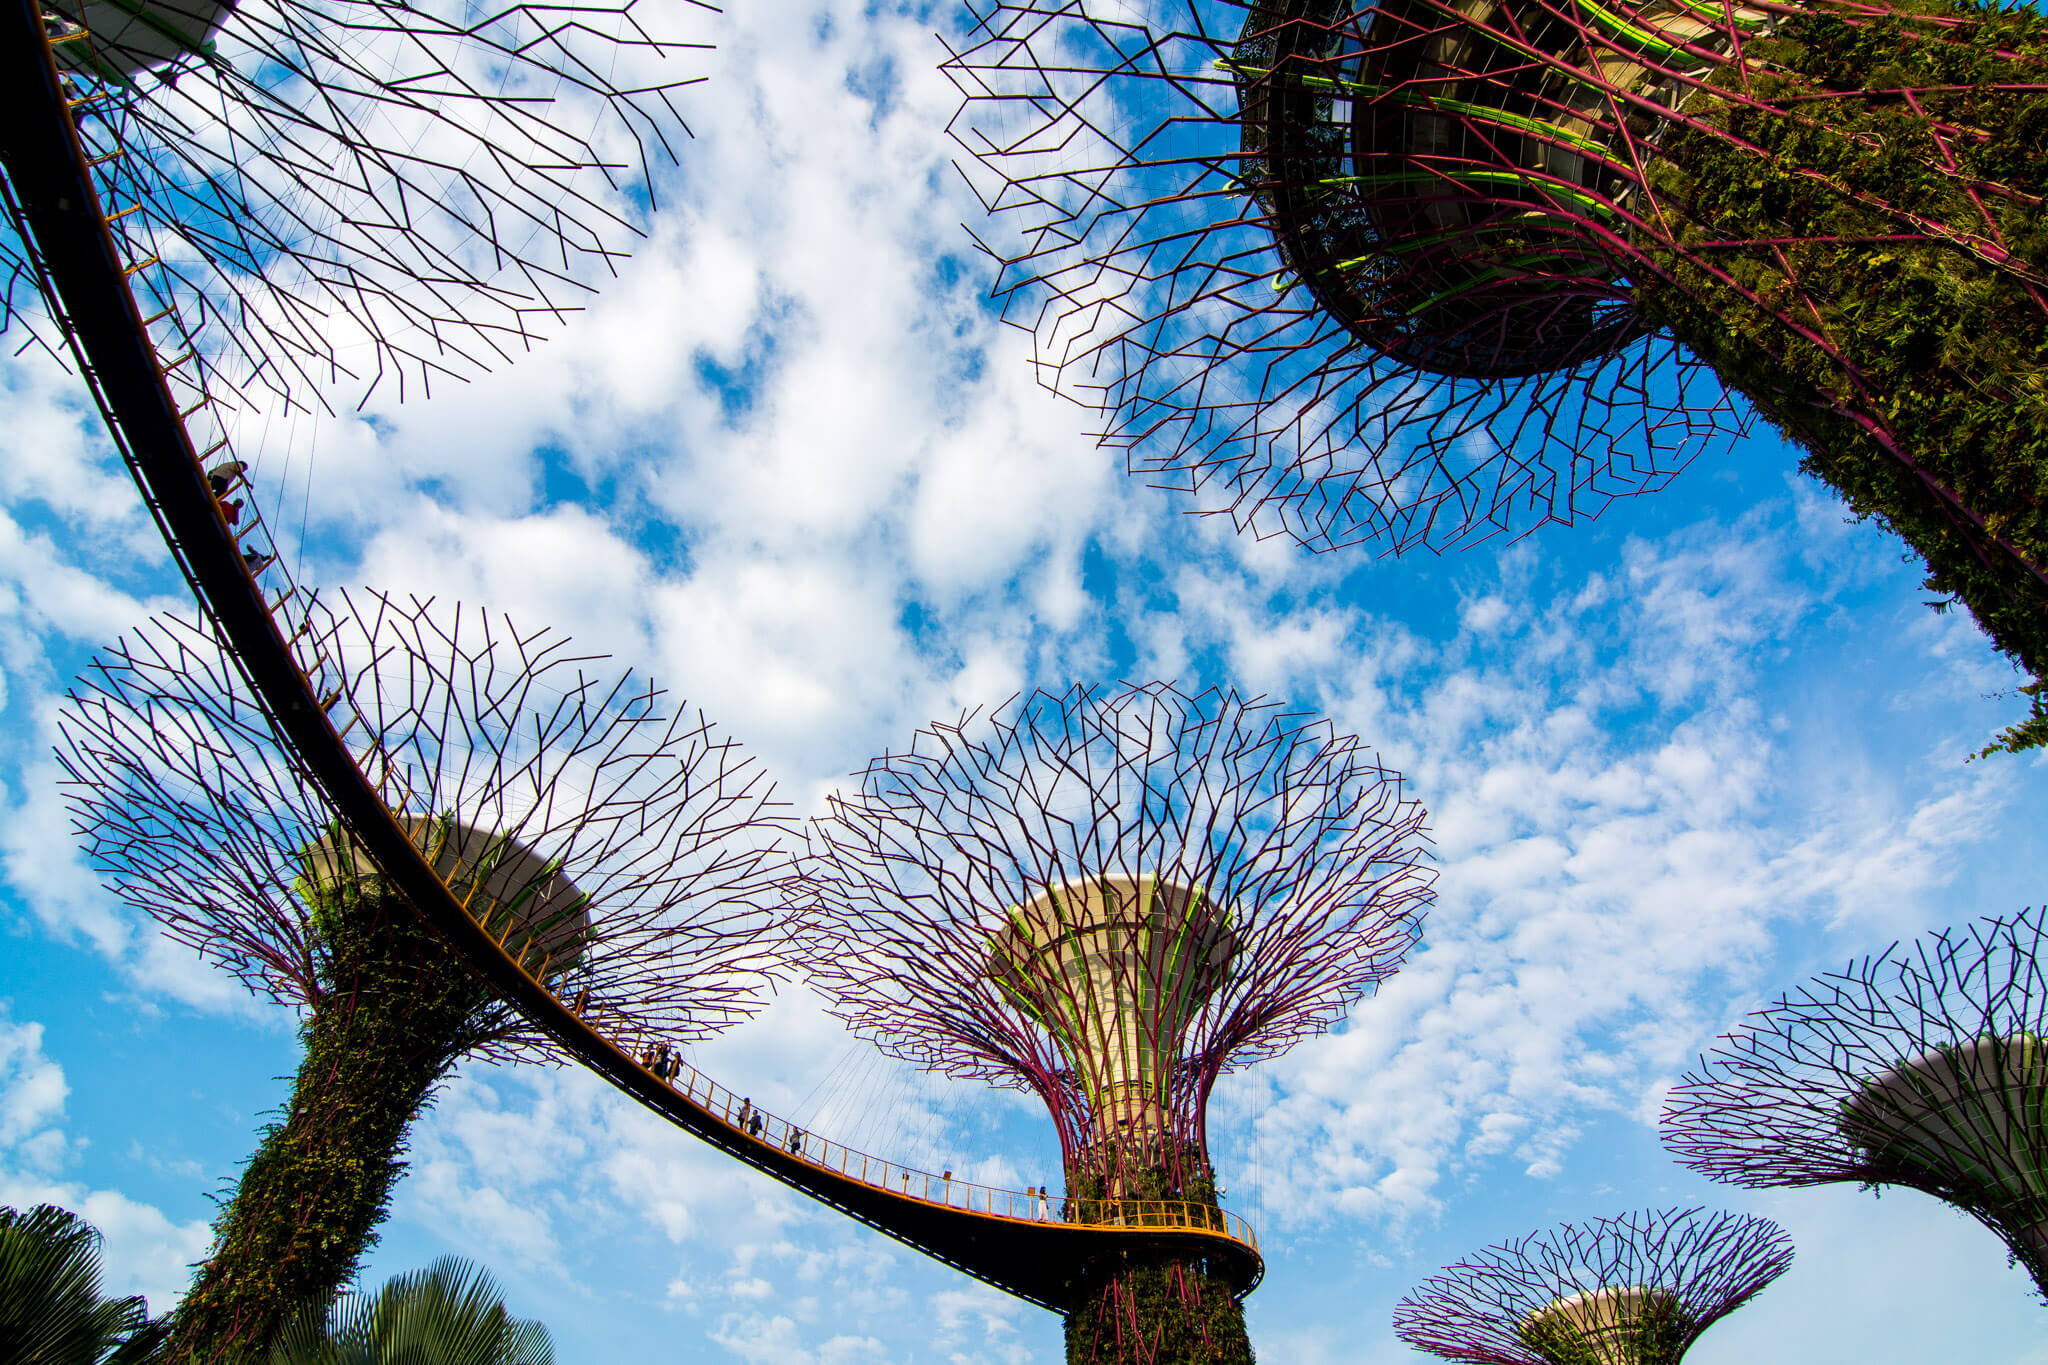 Is Singapore worth visiting?